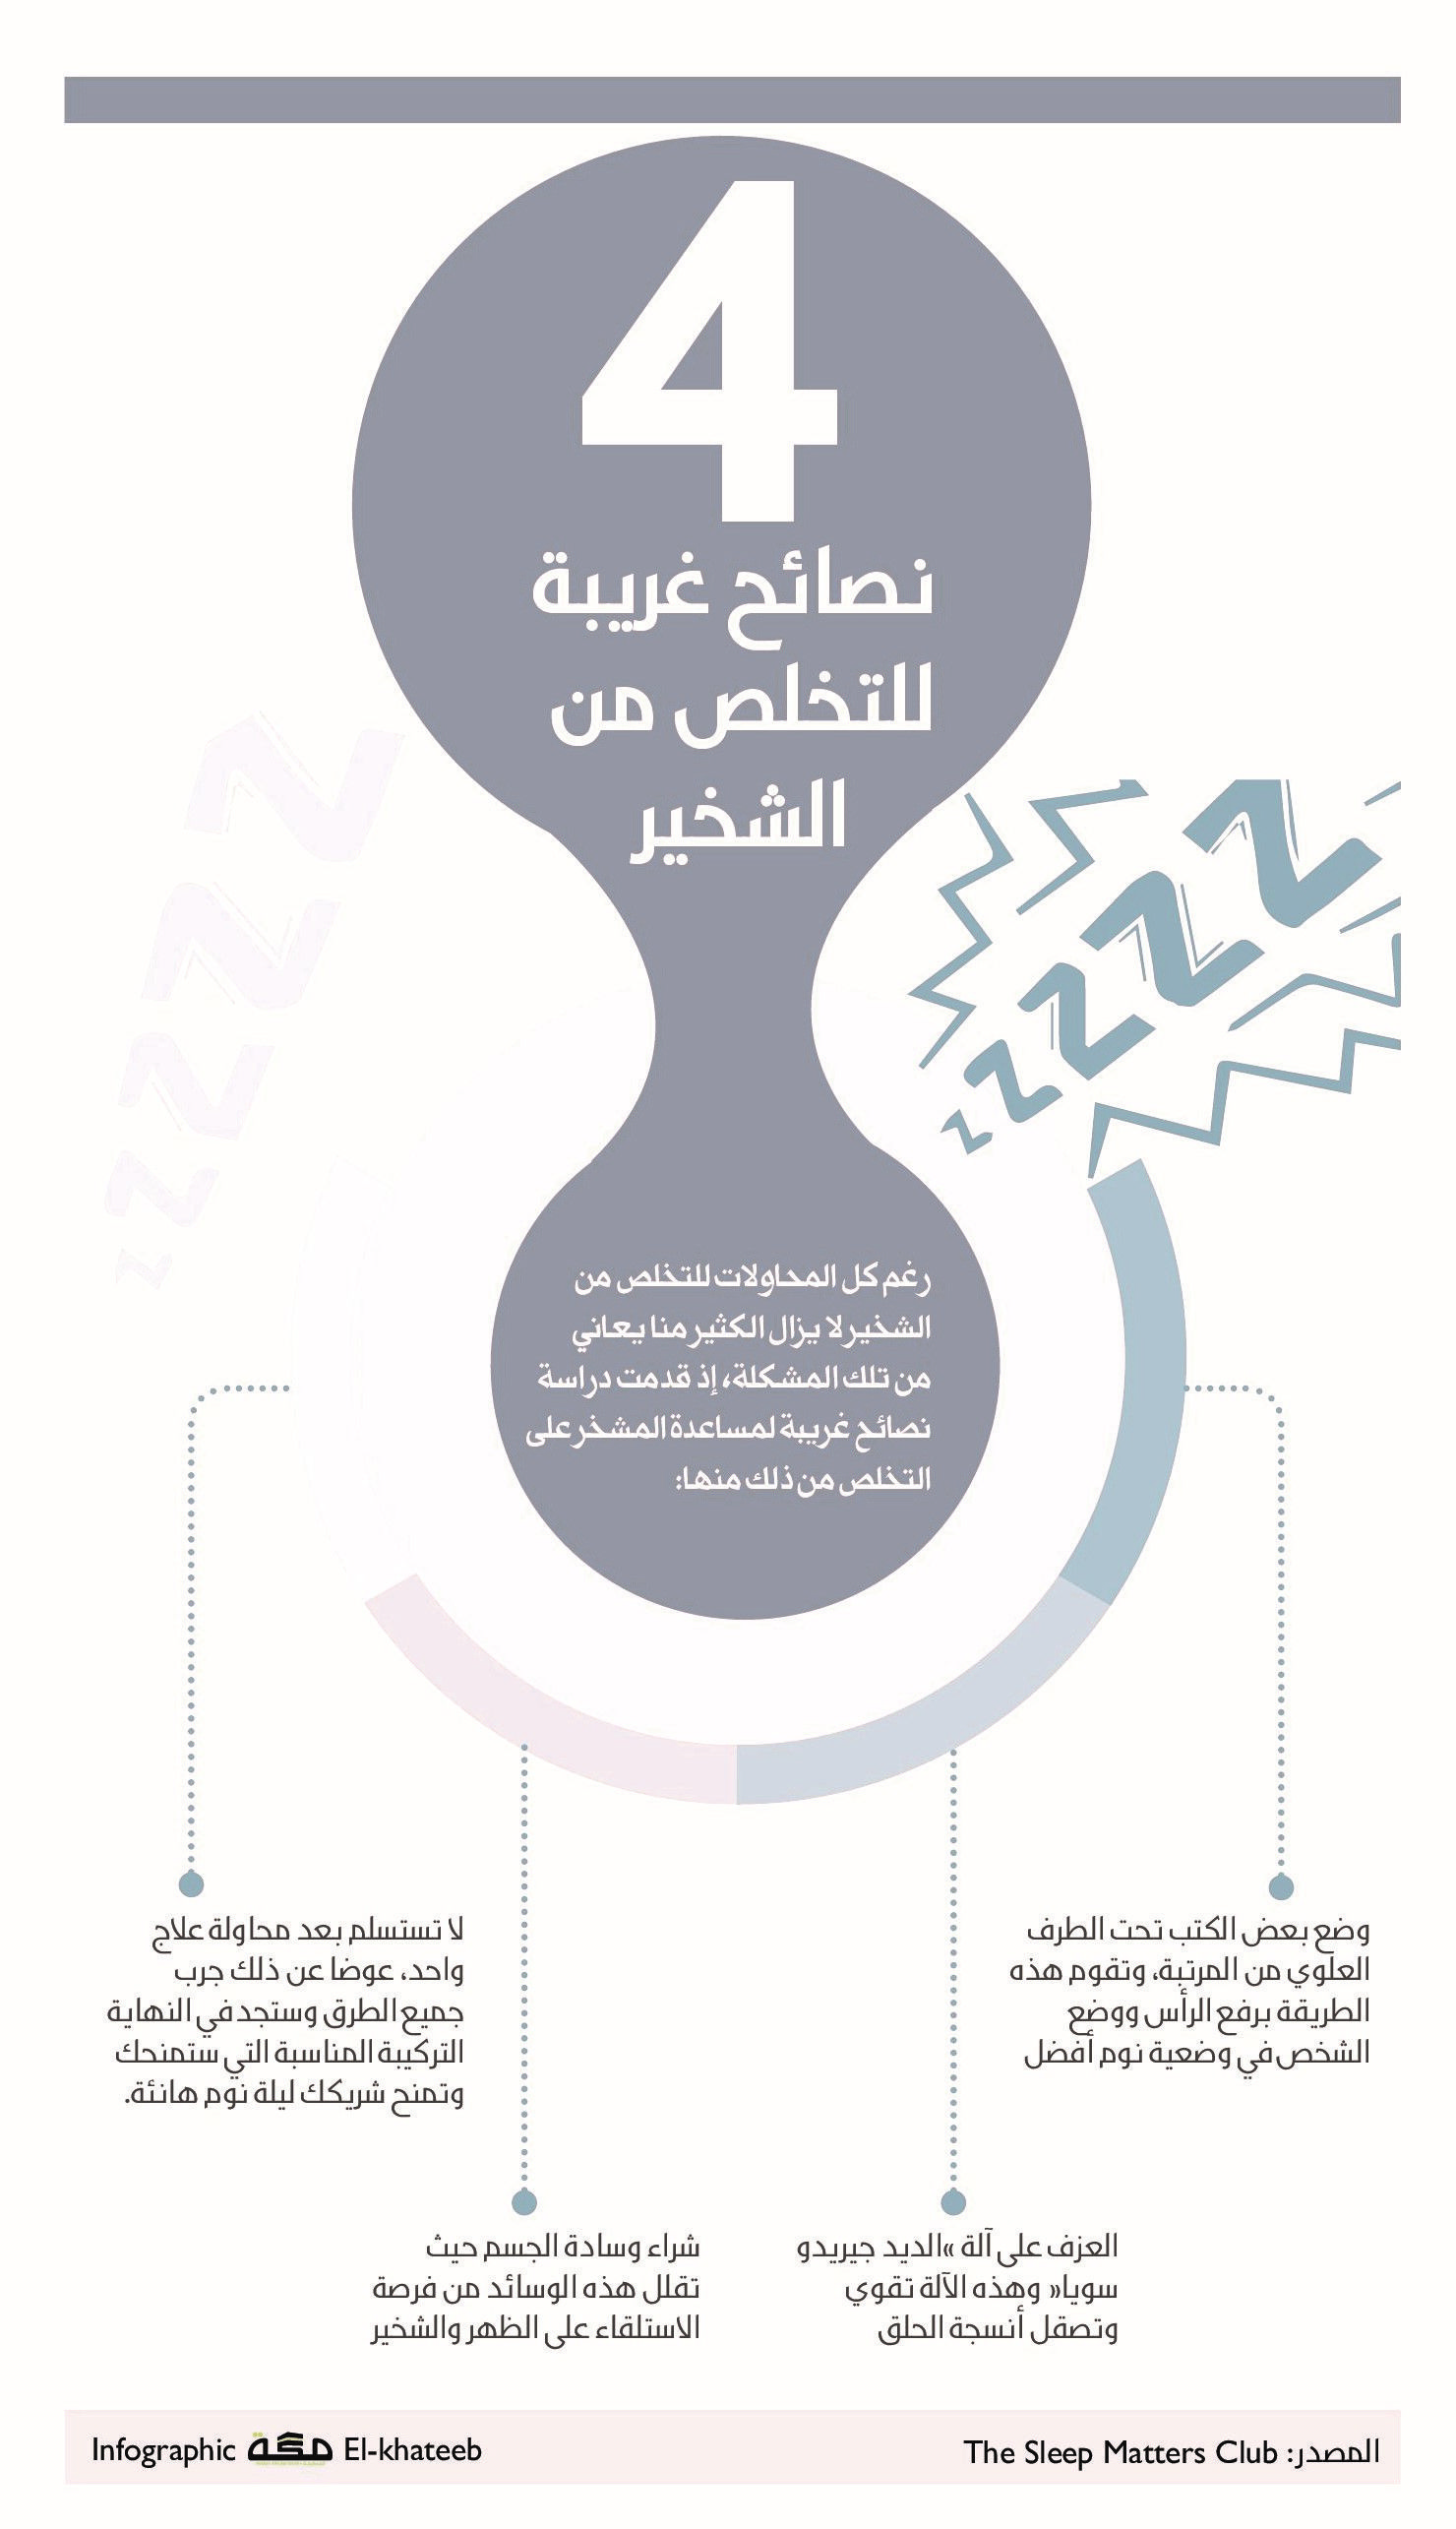 Pin By Newspaper On Infographic Makkahnp Symbols Infographic Letters